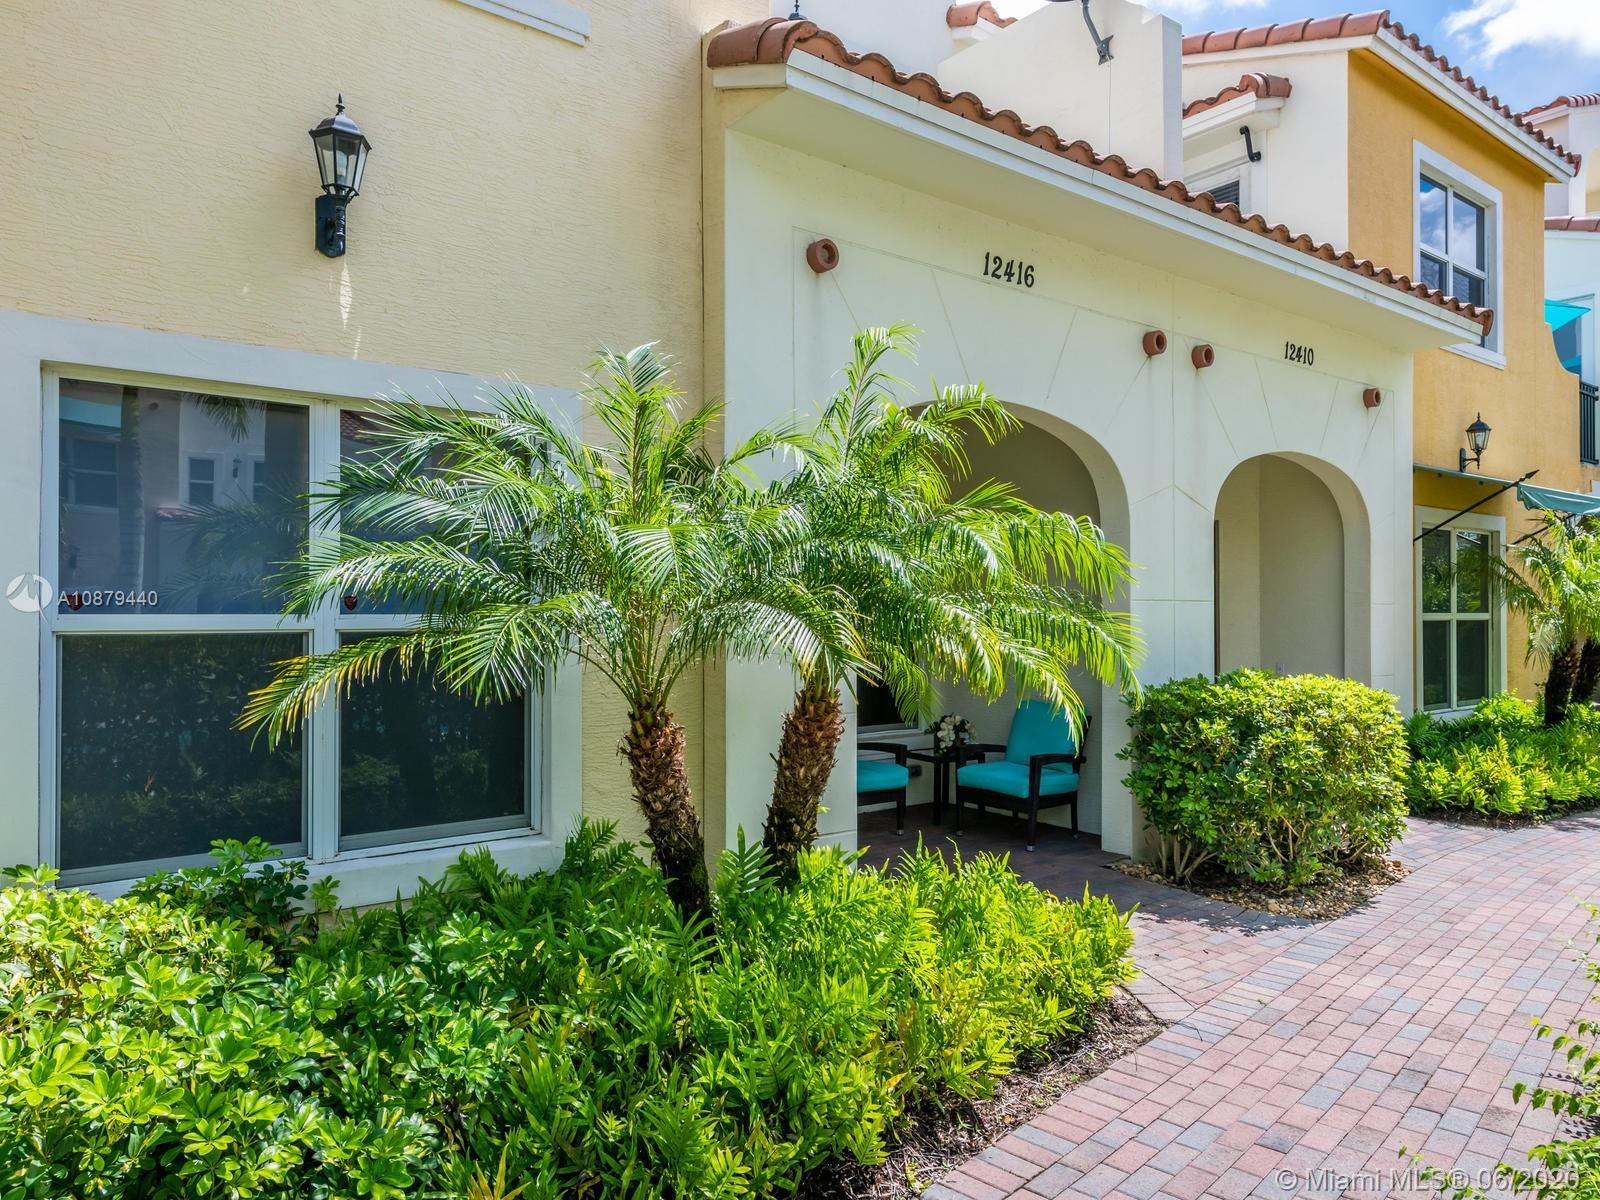 12416 NW 18th Ct #12416, Pembroke Pines, FL 33028 - #: A10879440